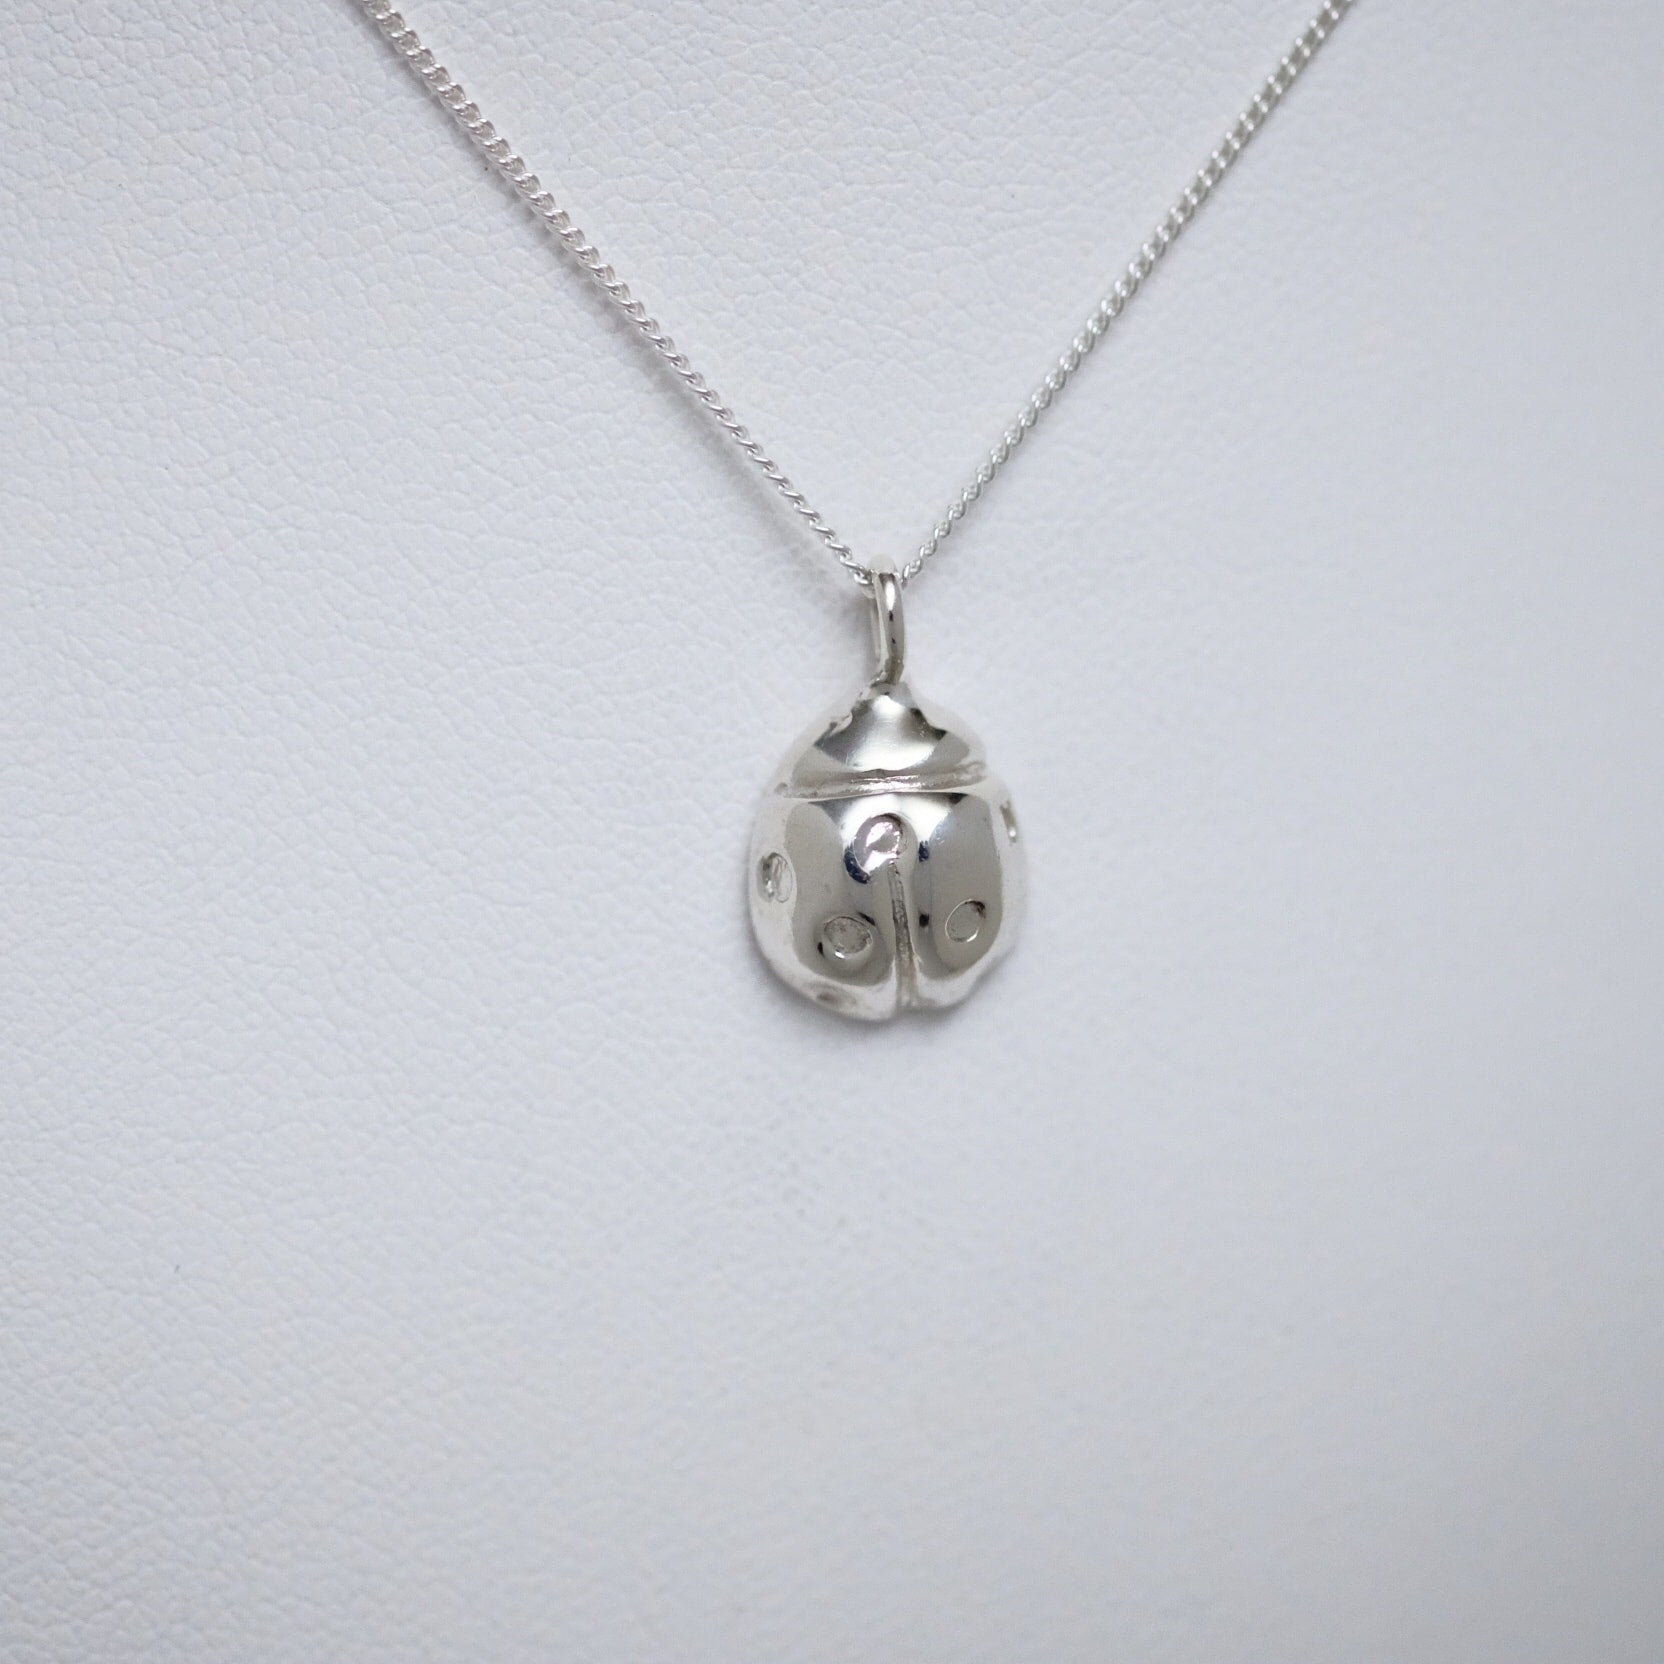 Large sterling silver ladybug necklace by Joseph Chiang